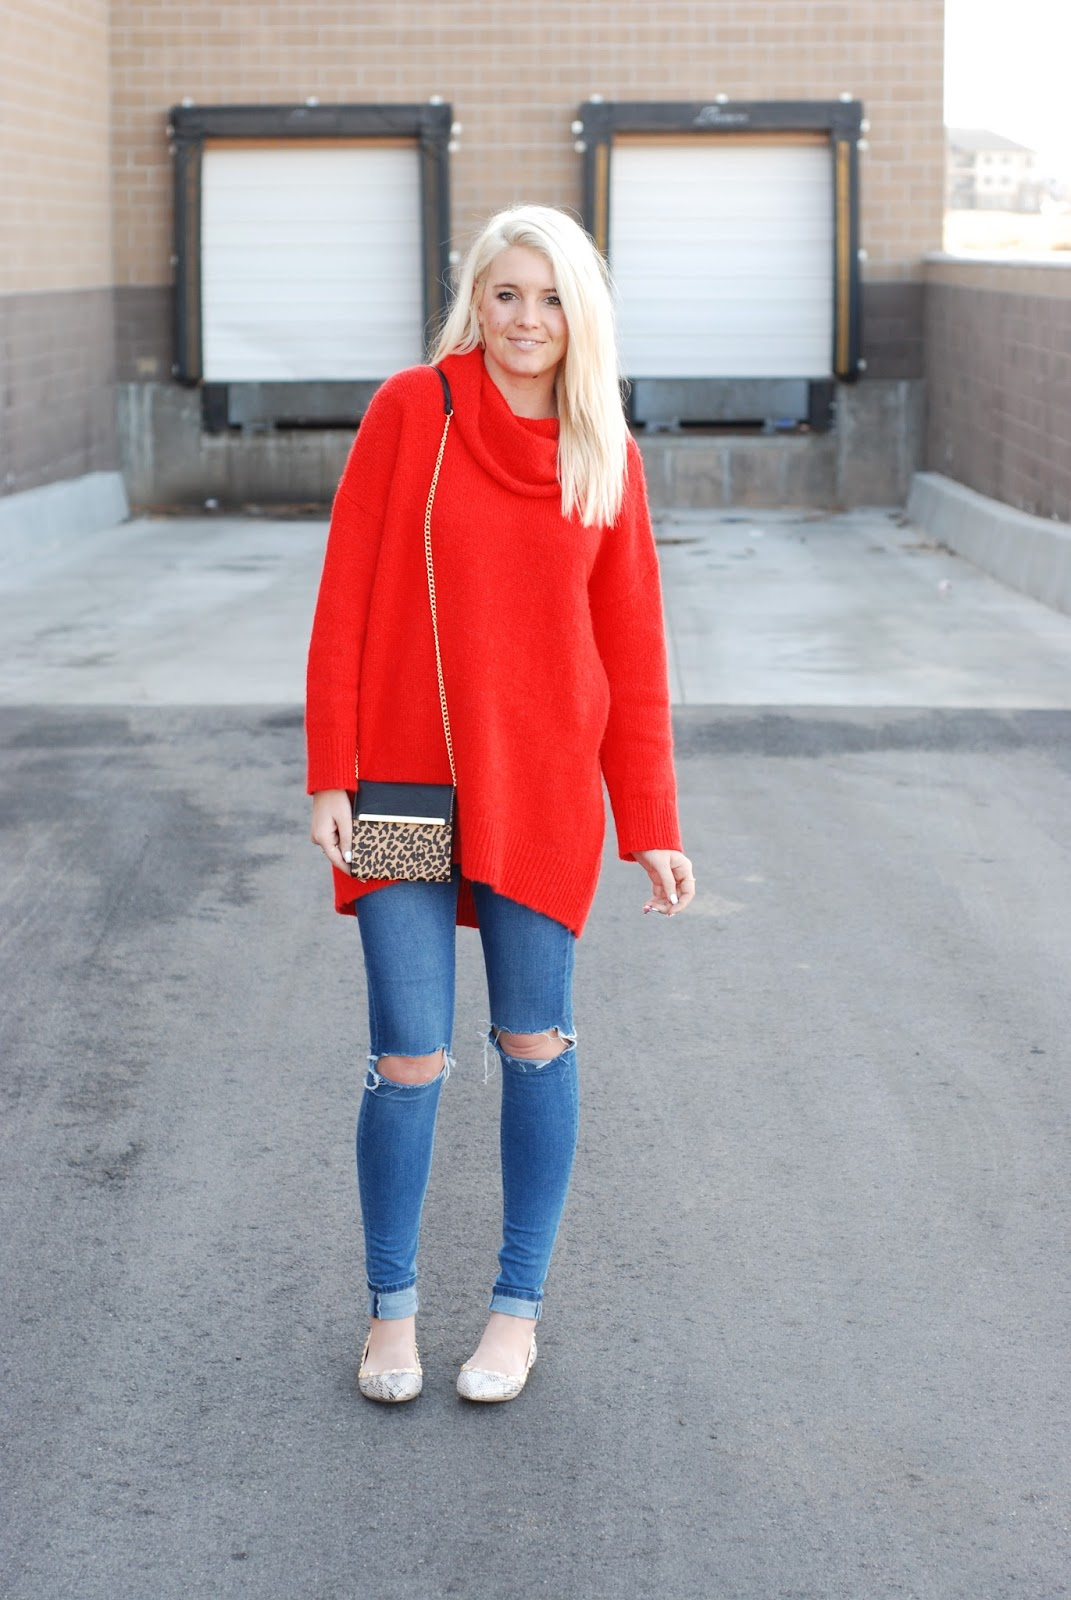 SUPERSIZE IT SWEATER STYLE | The Red Closet Diary